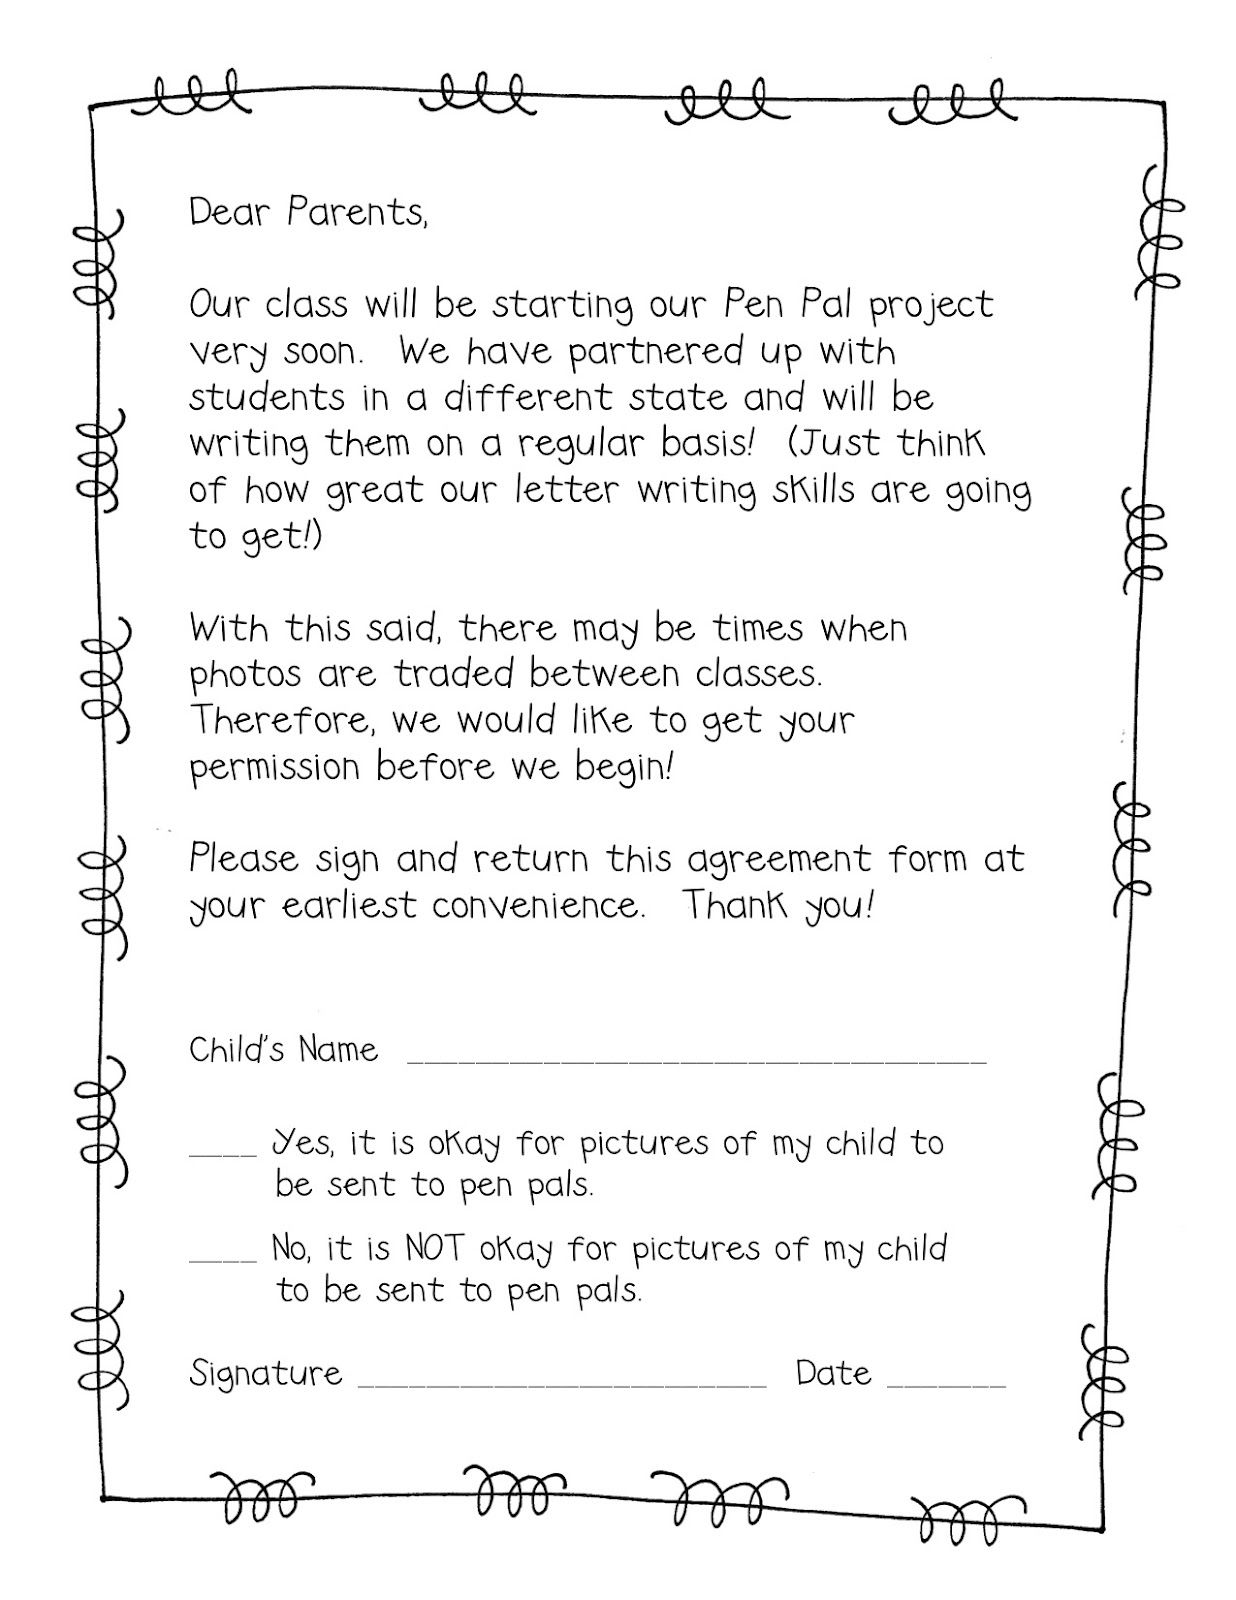 safe pen pal programs for students